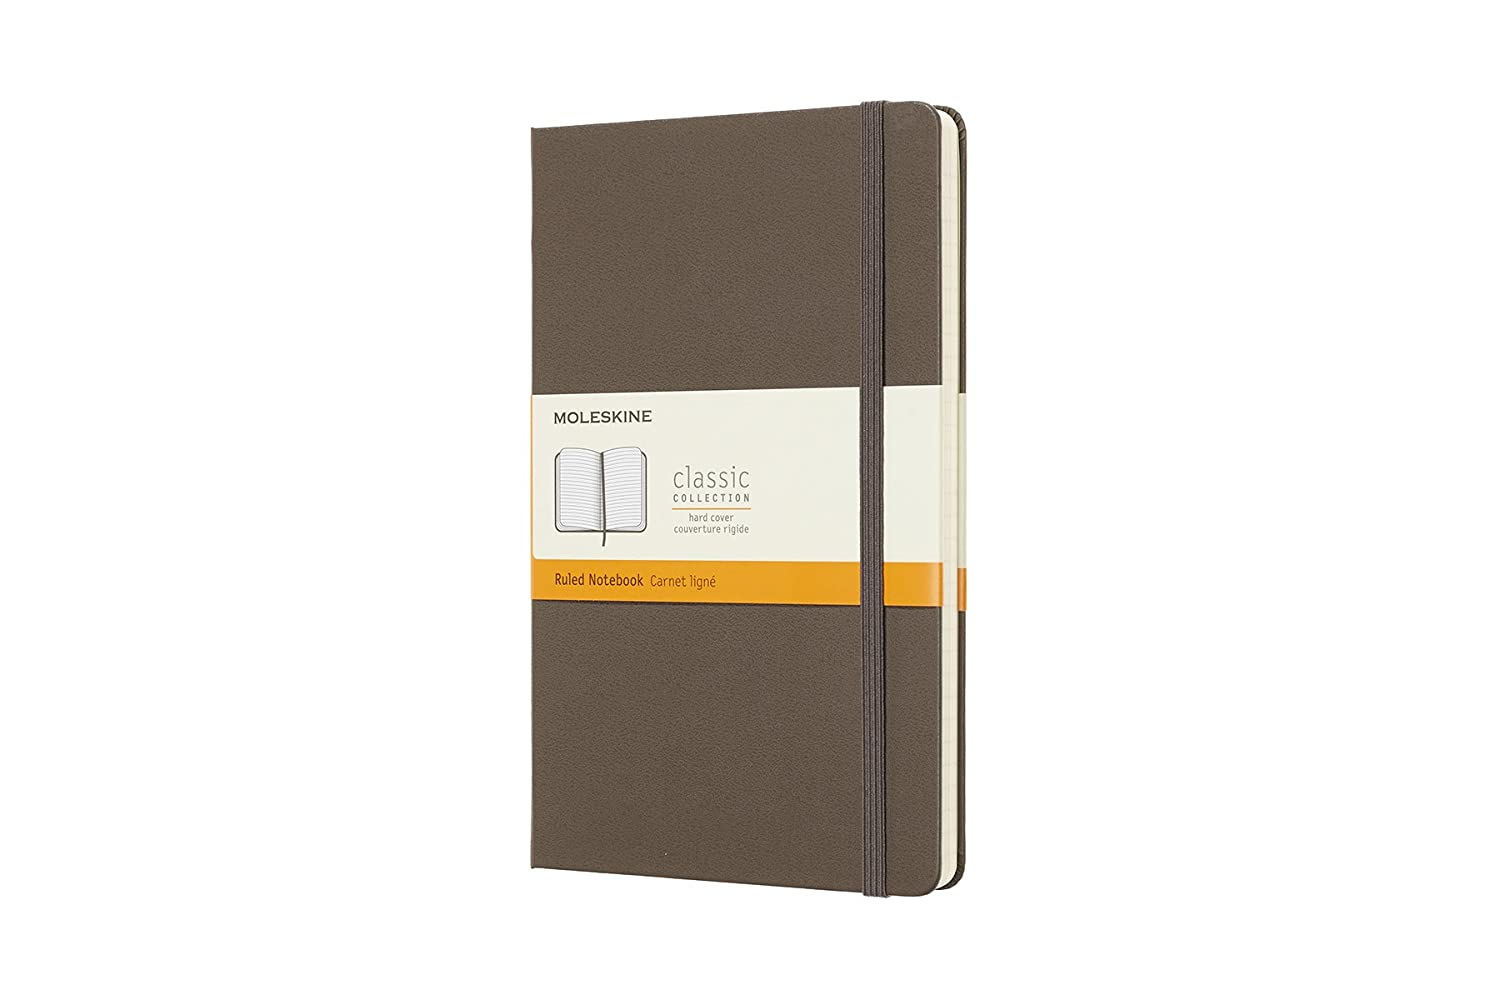 Classic Notebook Lg Ruled Brown Moleskine QP060P14 Accessory Consumer Accessories